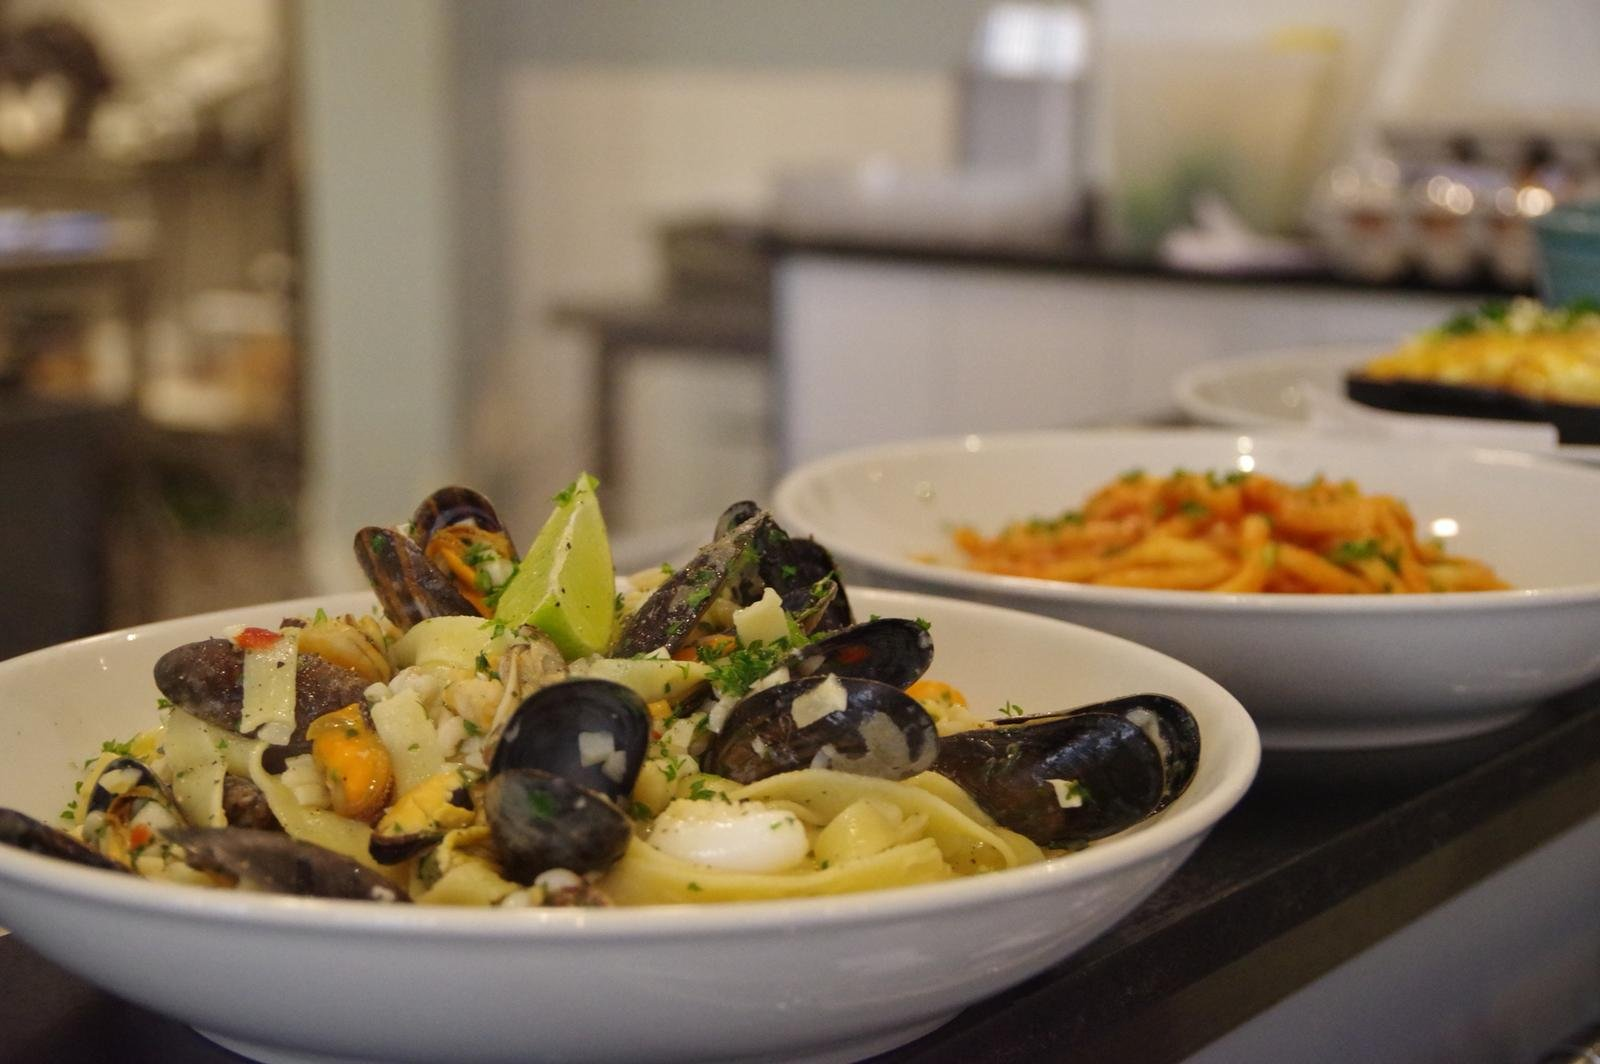 Where to eat European food in Vierhouten: The Best Restaurants and Bars